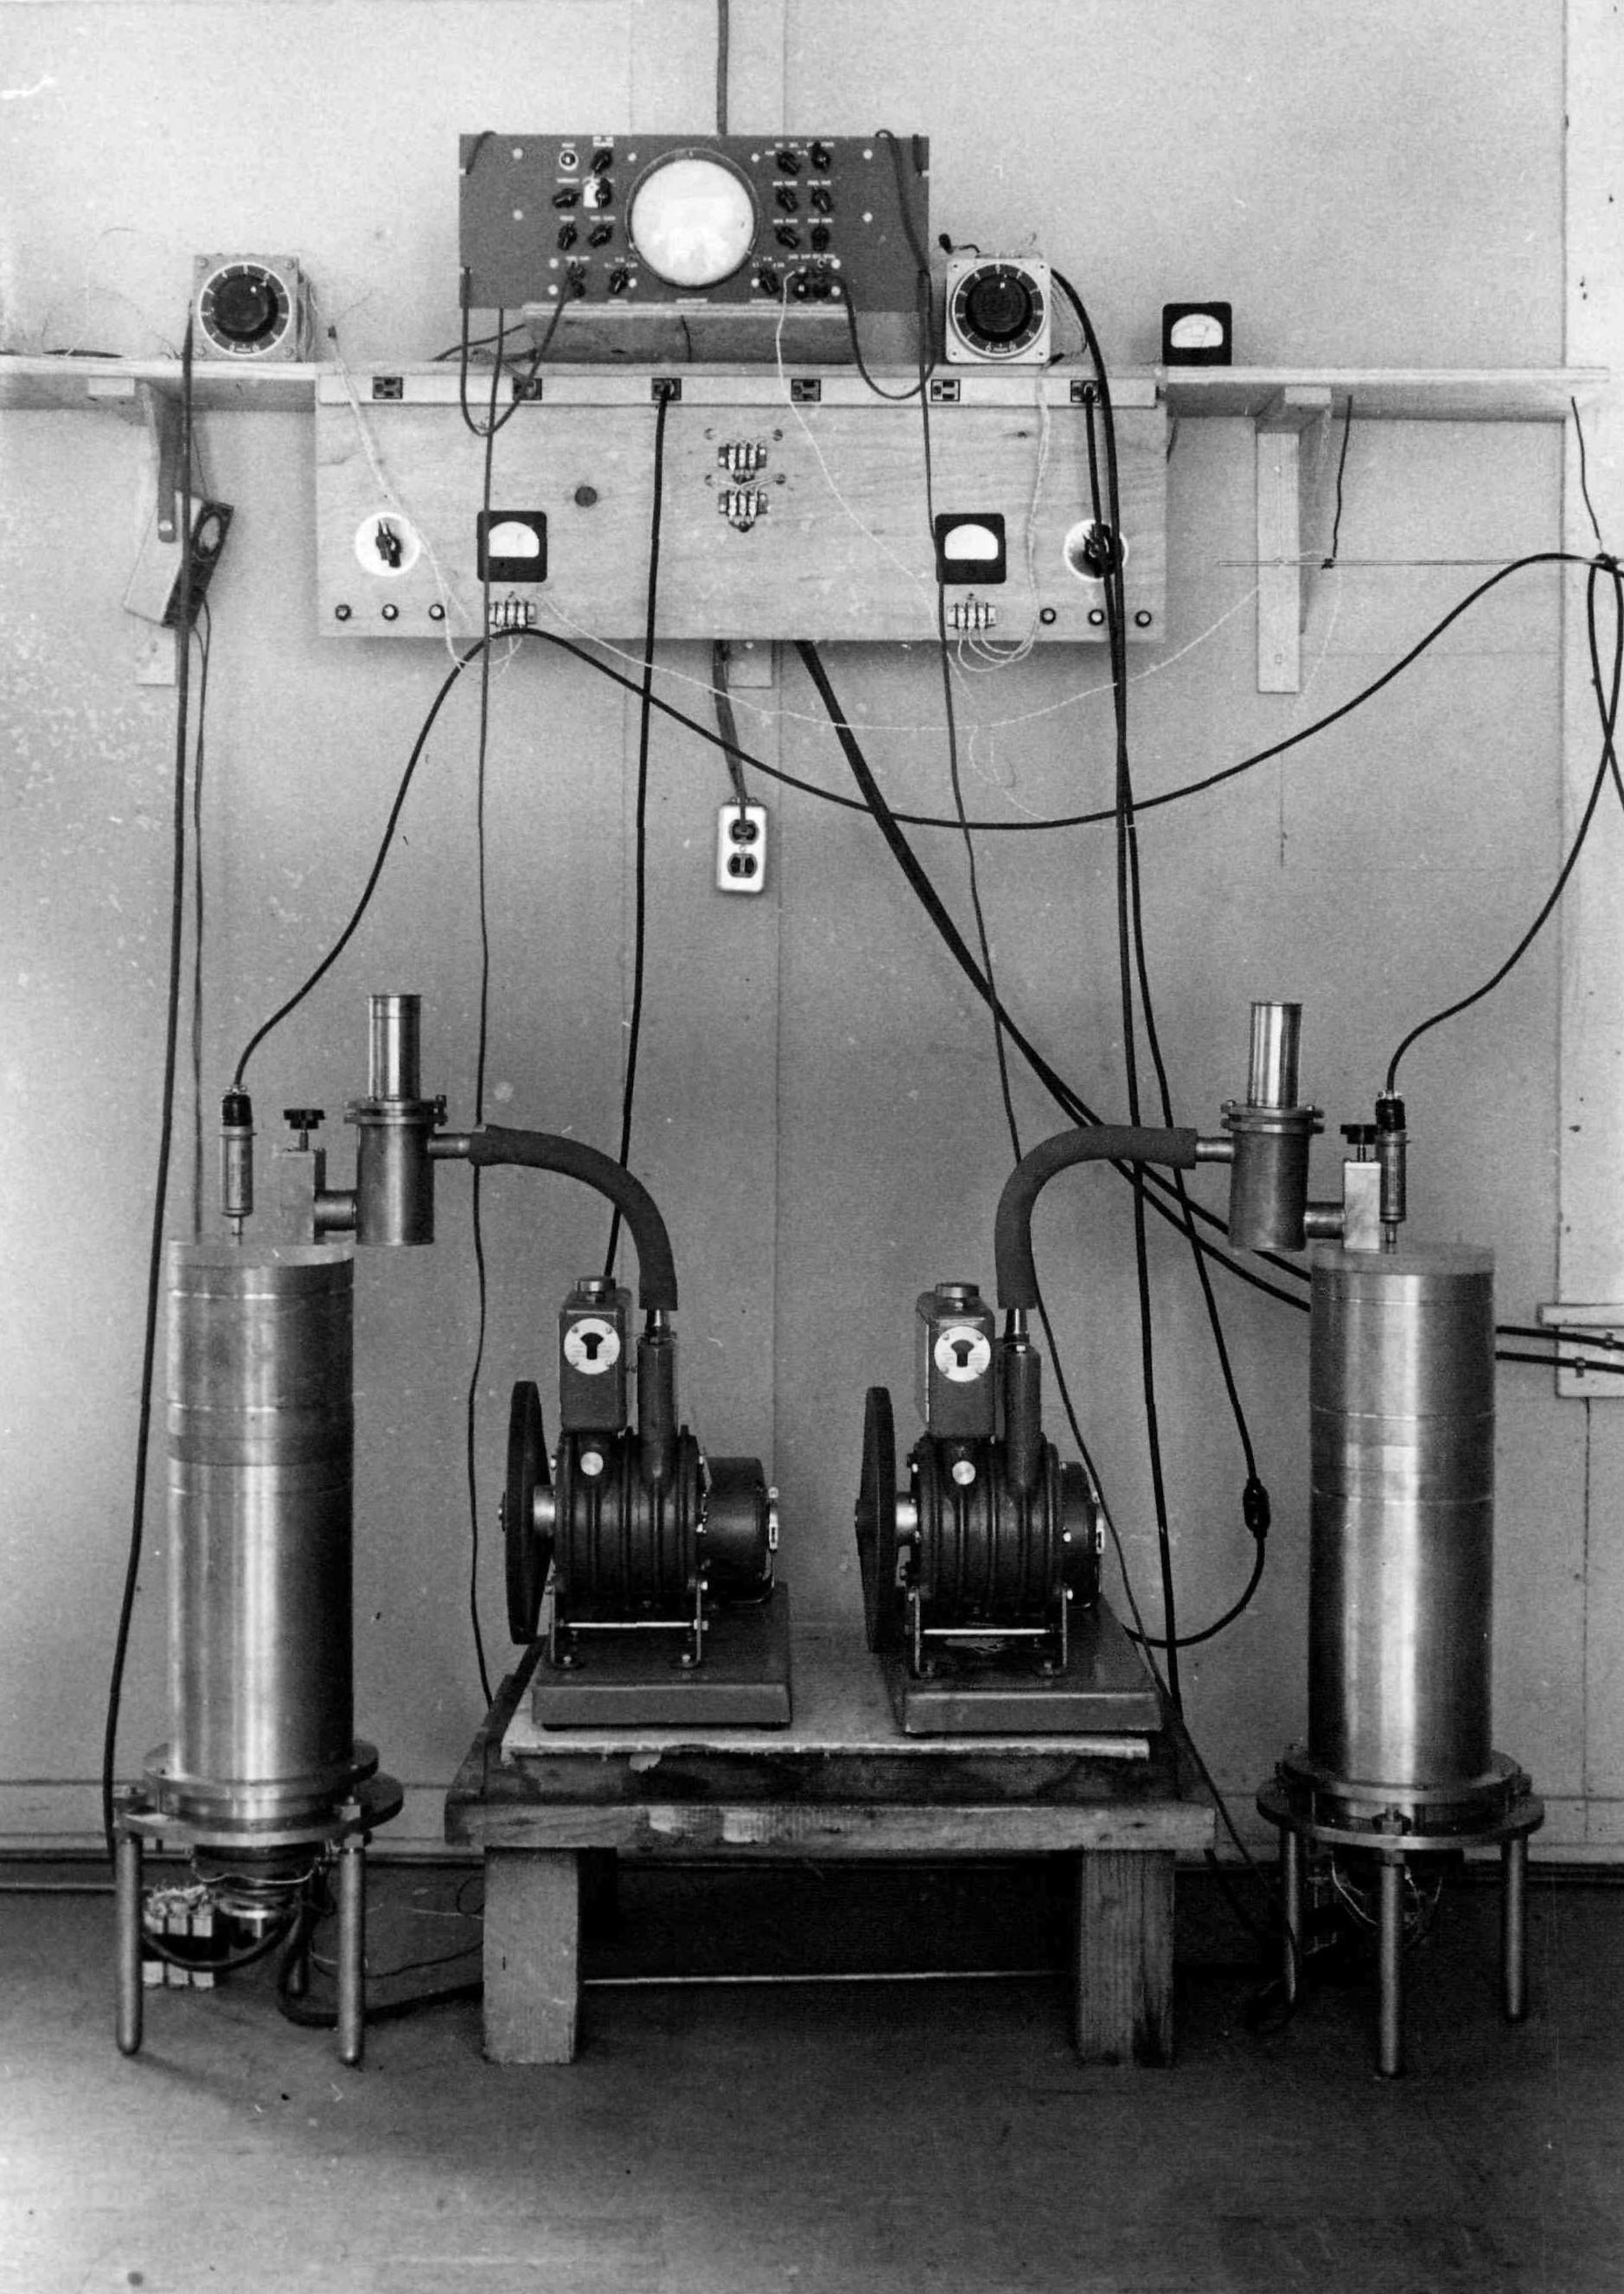 1959-Zippe-centrifuge-rotors-on-stands